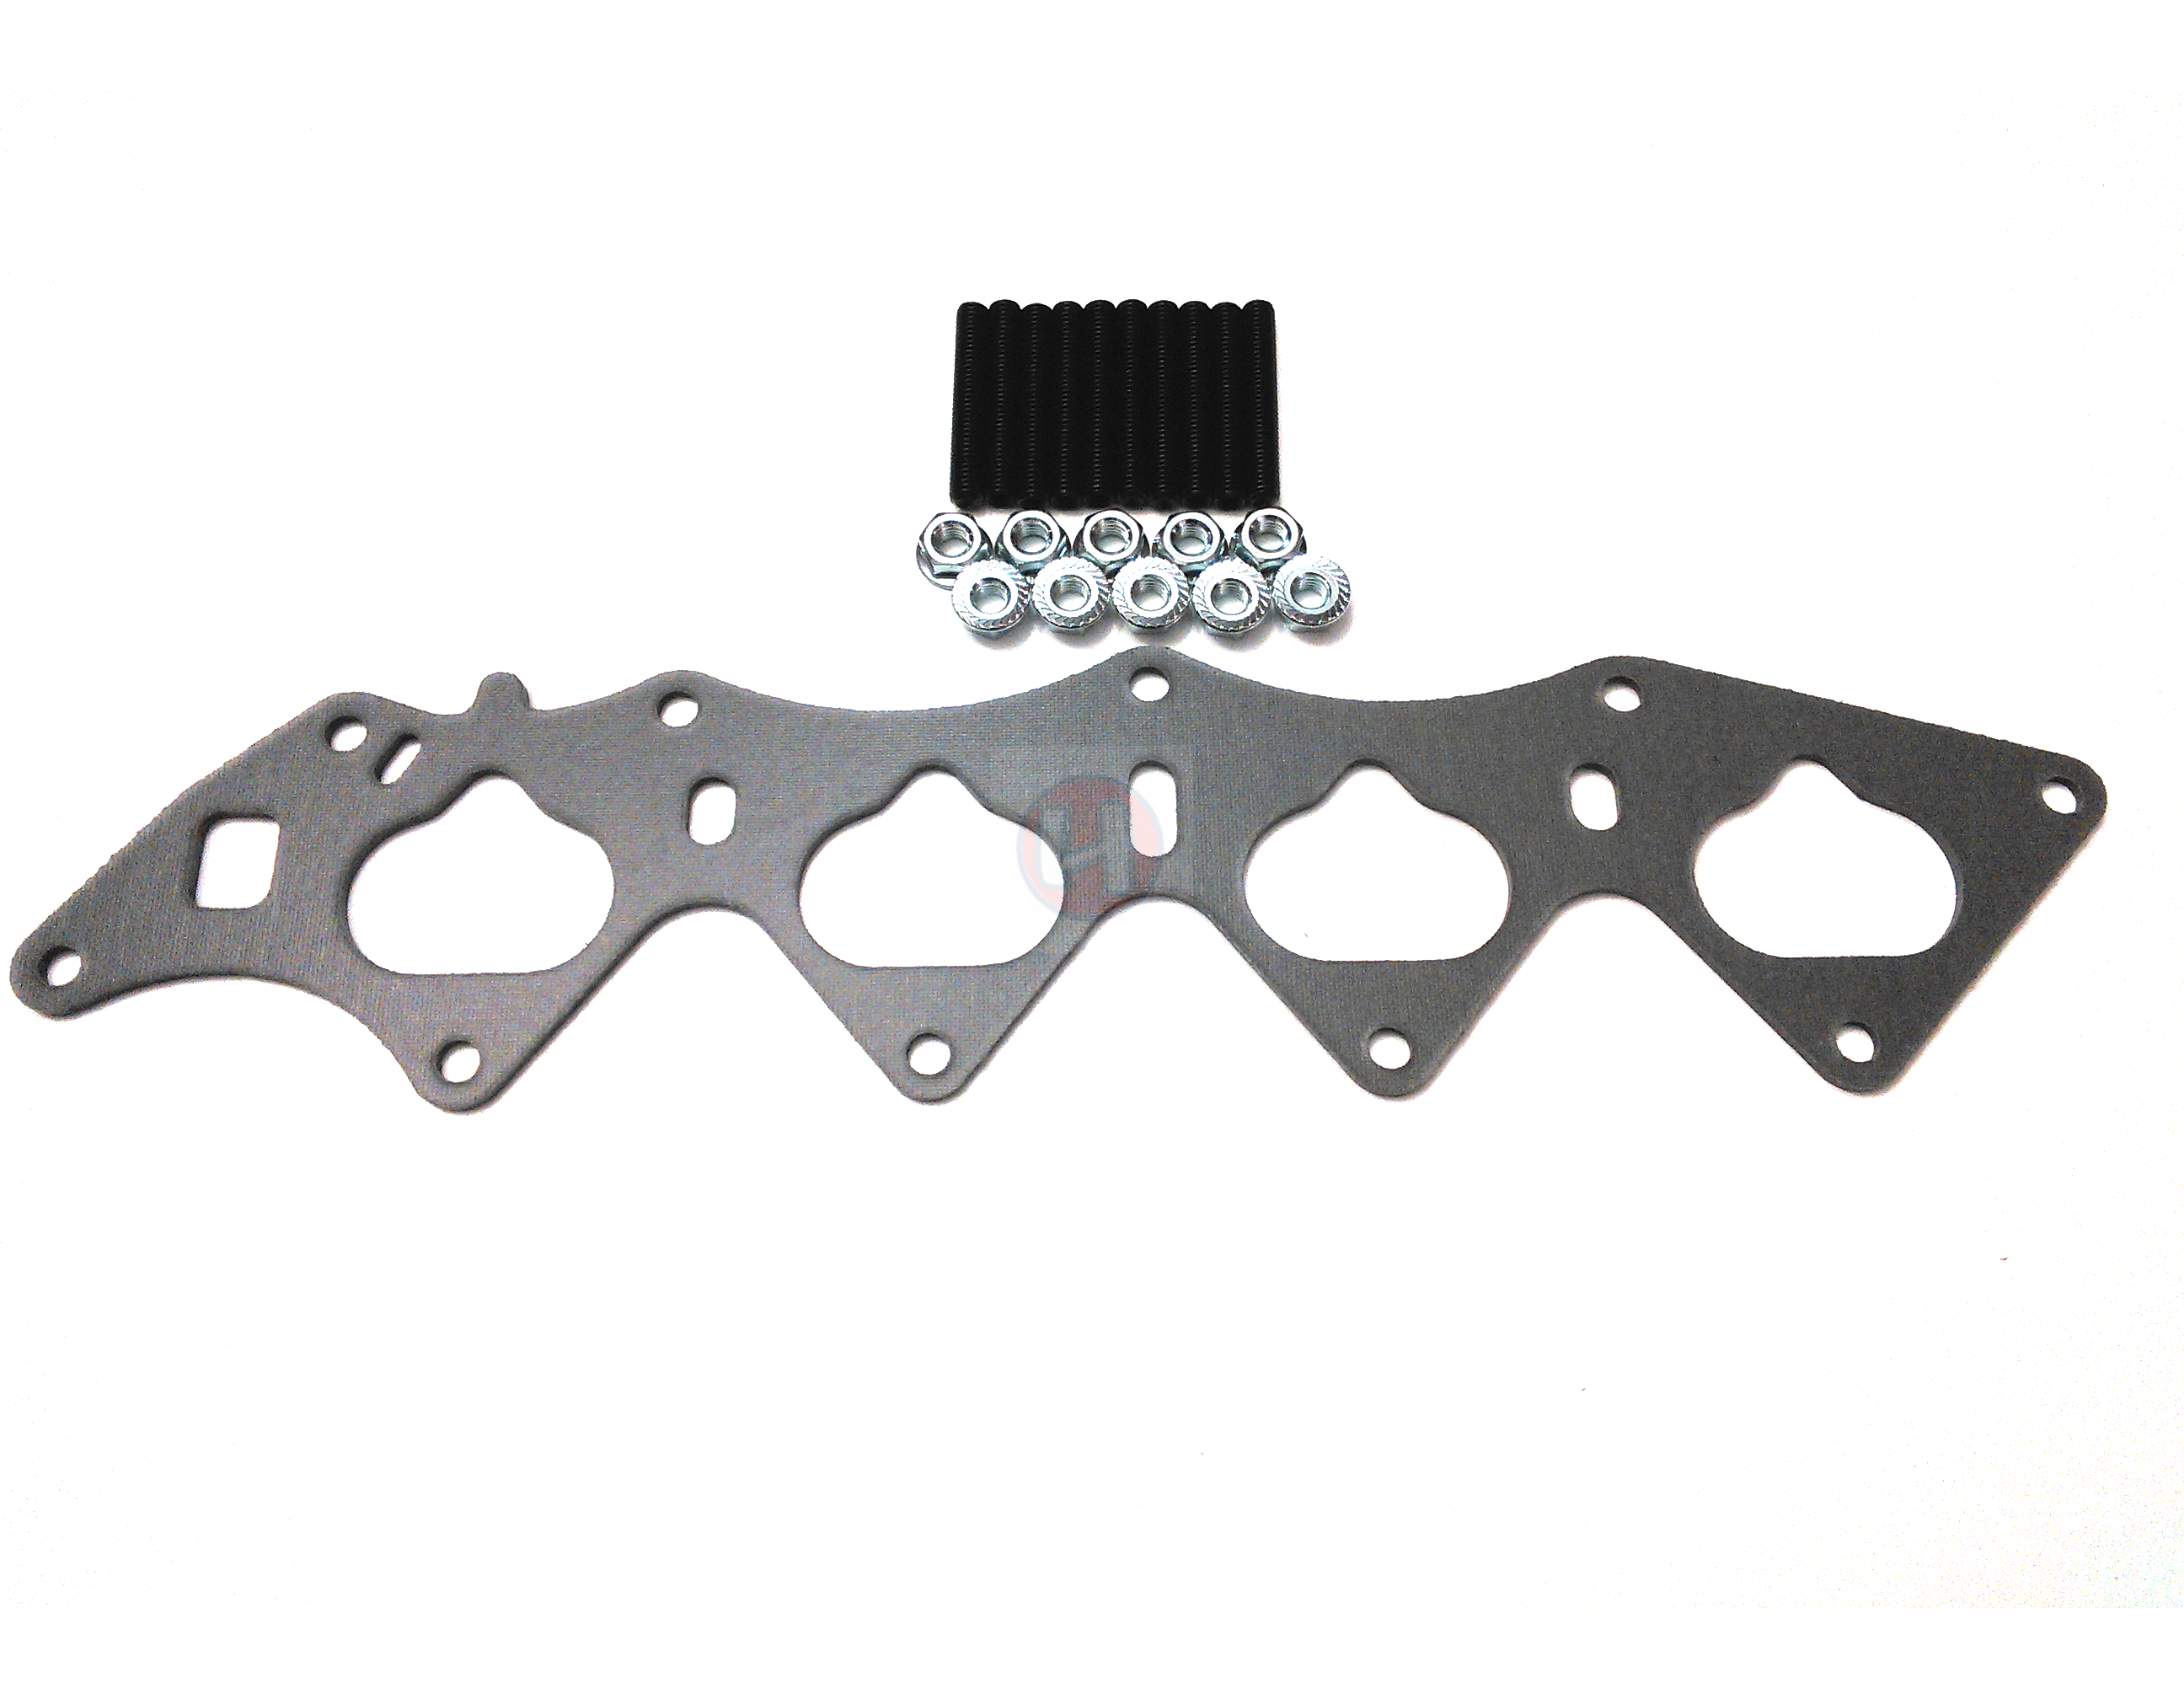 myHondaHabit Intake Manifold Gasket and Stud Kit for B16, B18C5/Type R or Civic SI